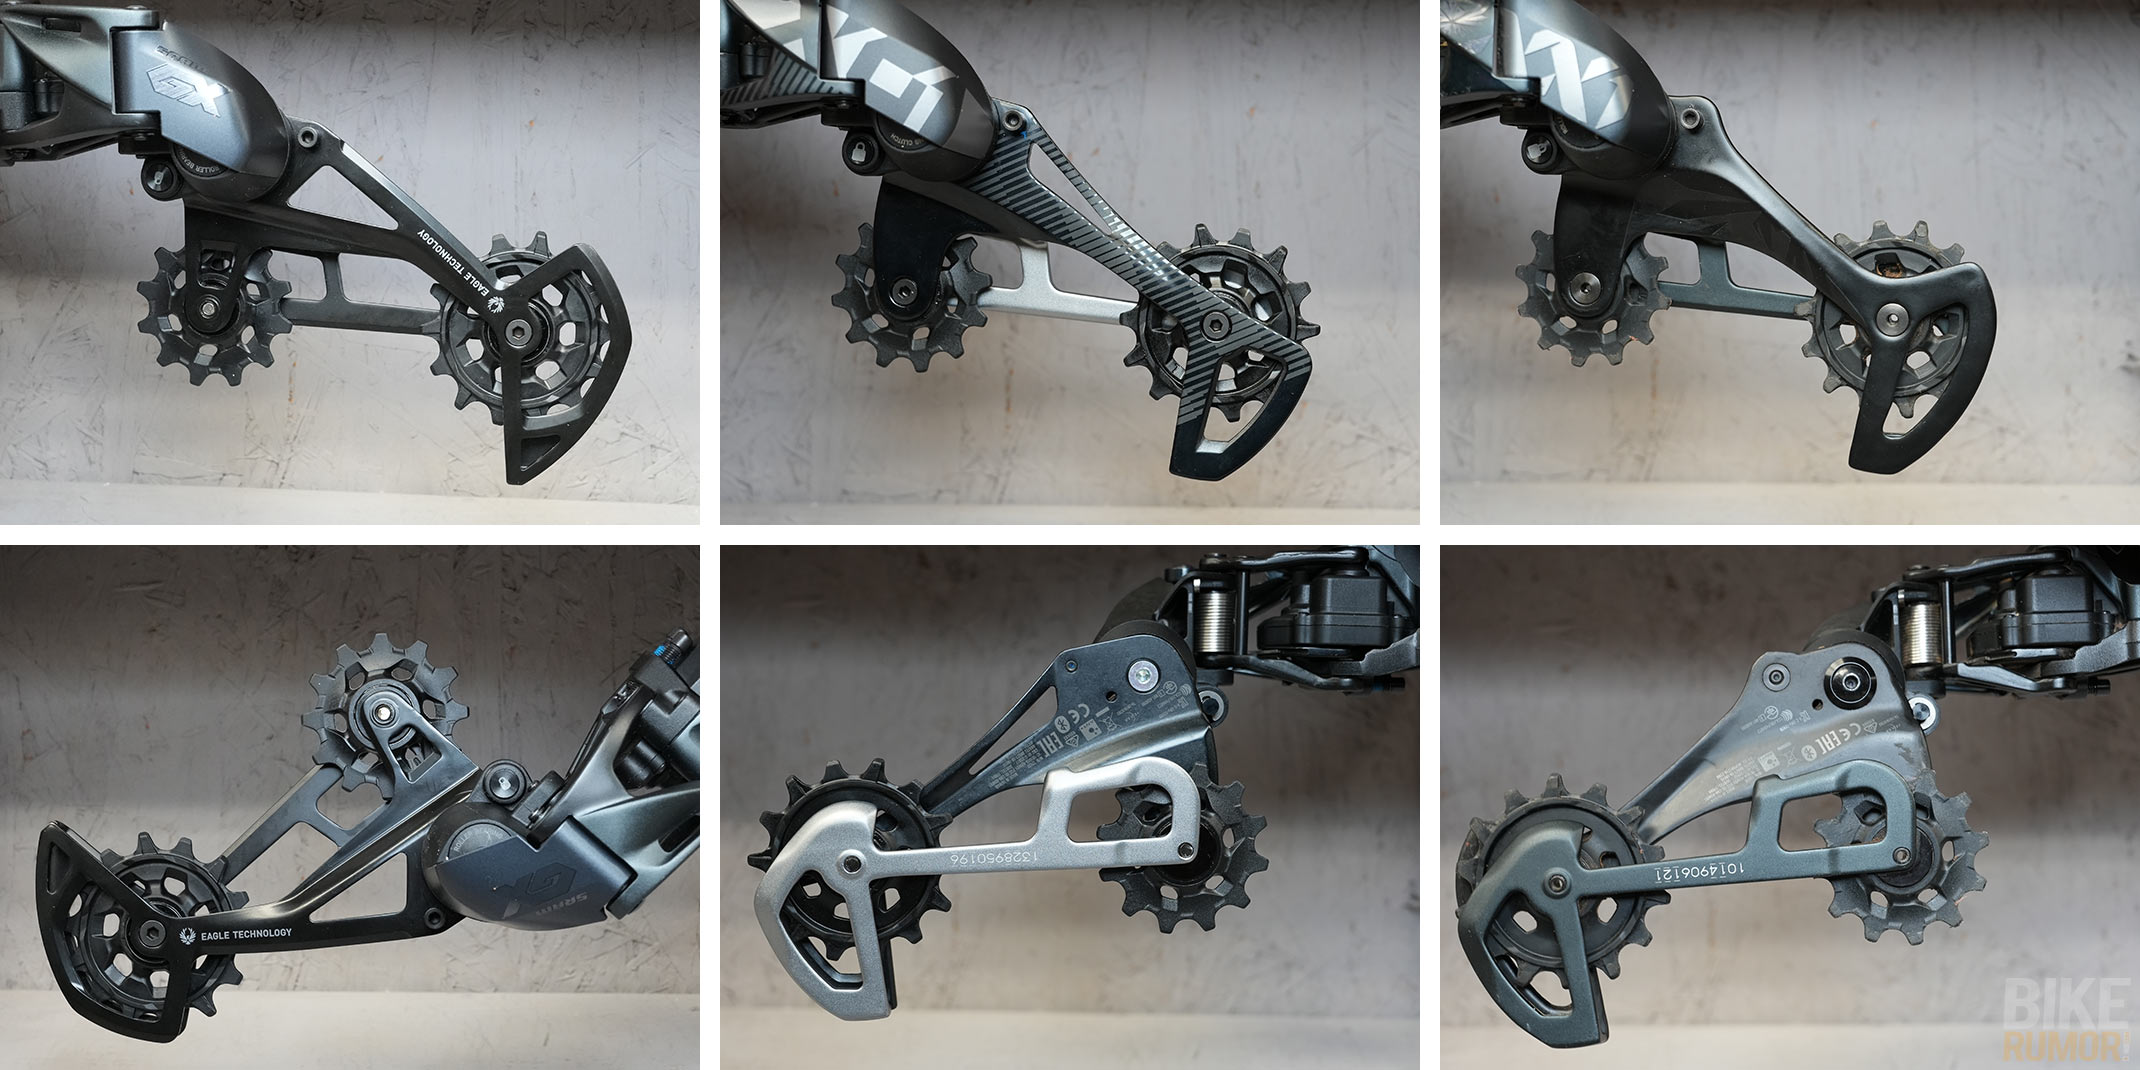 sram eagle axs wireless rear derailleur cage comparison